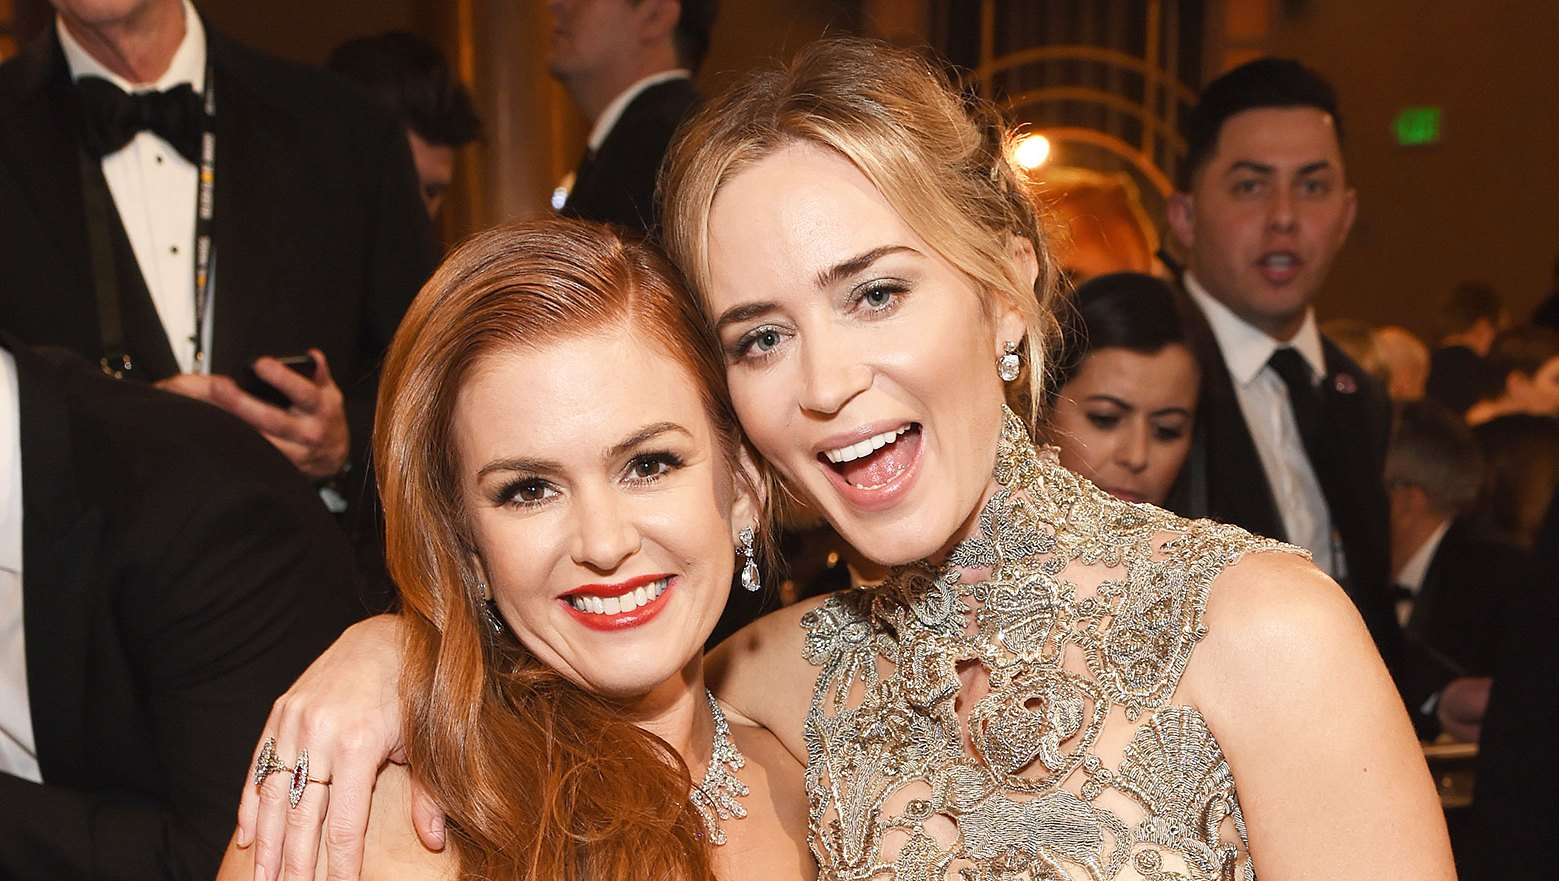 Inside Golden Globes 2019 Isla Fisher and Emily Blunt